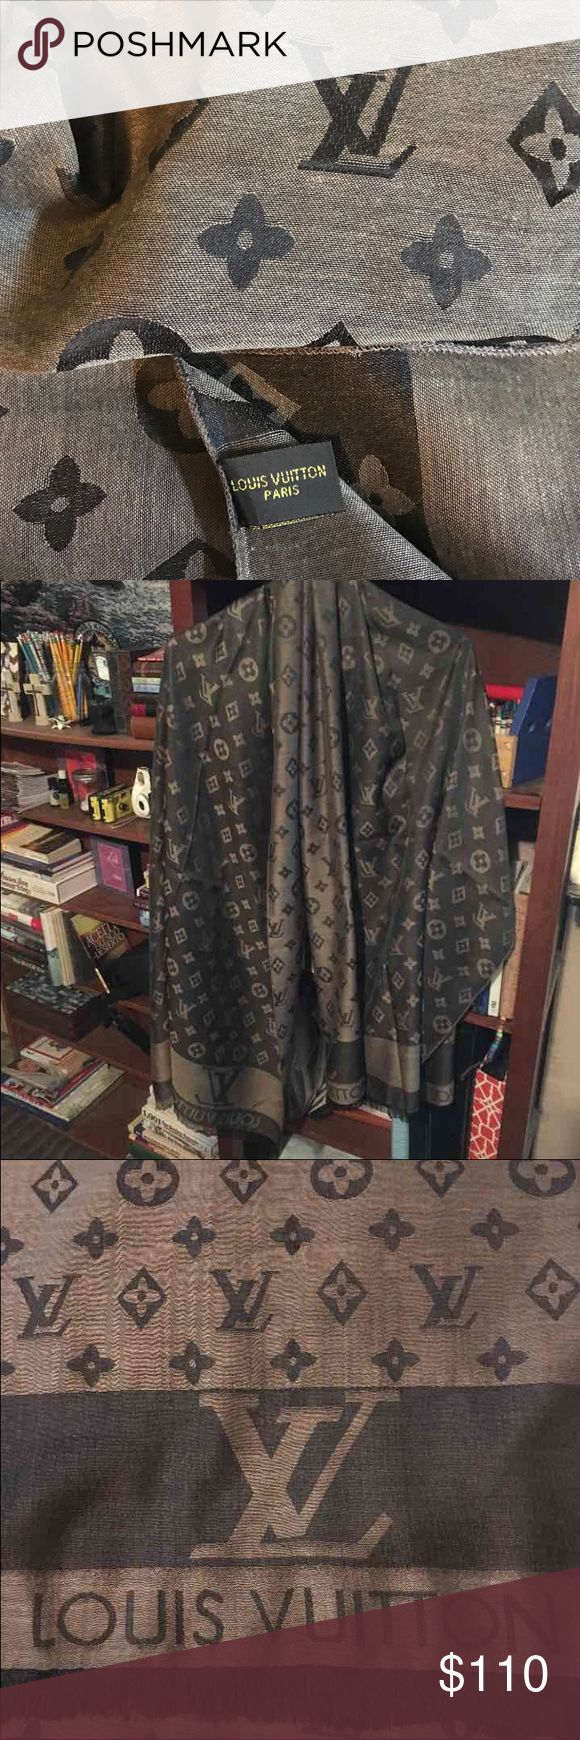 LV beautiful signature scarf Brand New! 72 in by 28 in.  Extra large lv monogram scarf.  Can be worn several ways.  Shawl, scarf, or body covering!  Combination of silk and cashmere!   LV beautiful signature scarf Louis Vuitton Accessories Scarves & Wraps